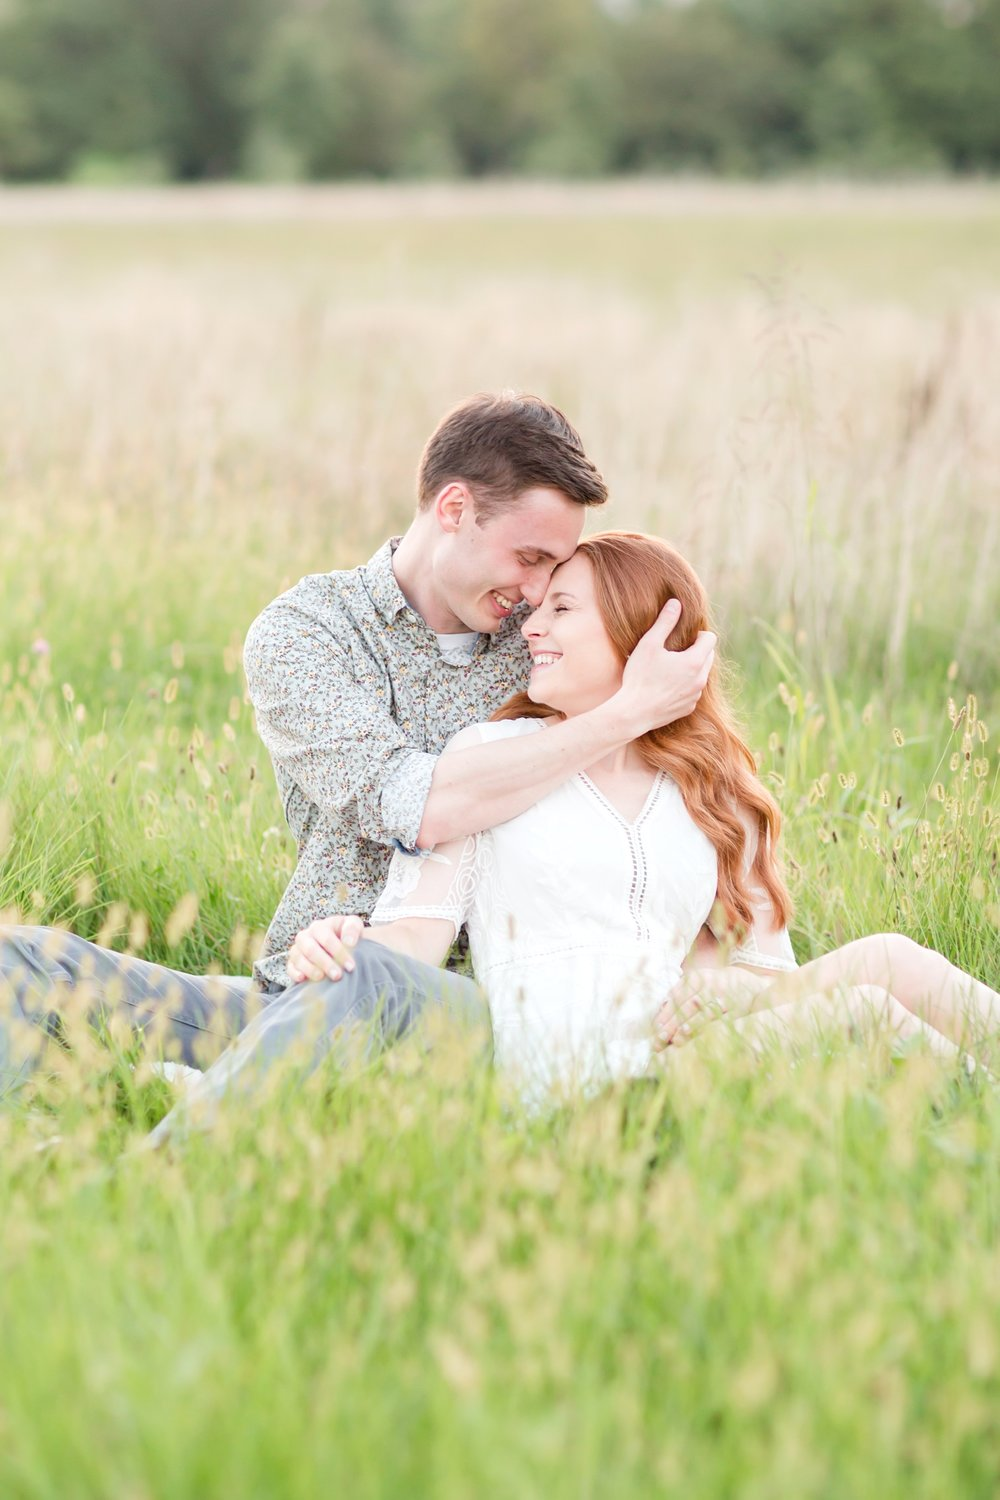 See more from   Leo and Jessica's engagement session at the Maryland Agricultural Resource Council here  !